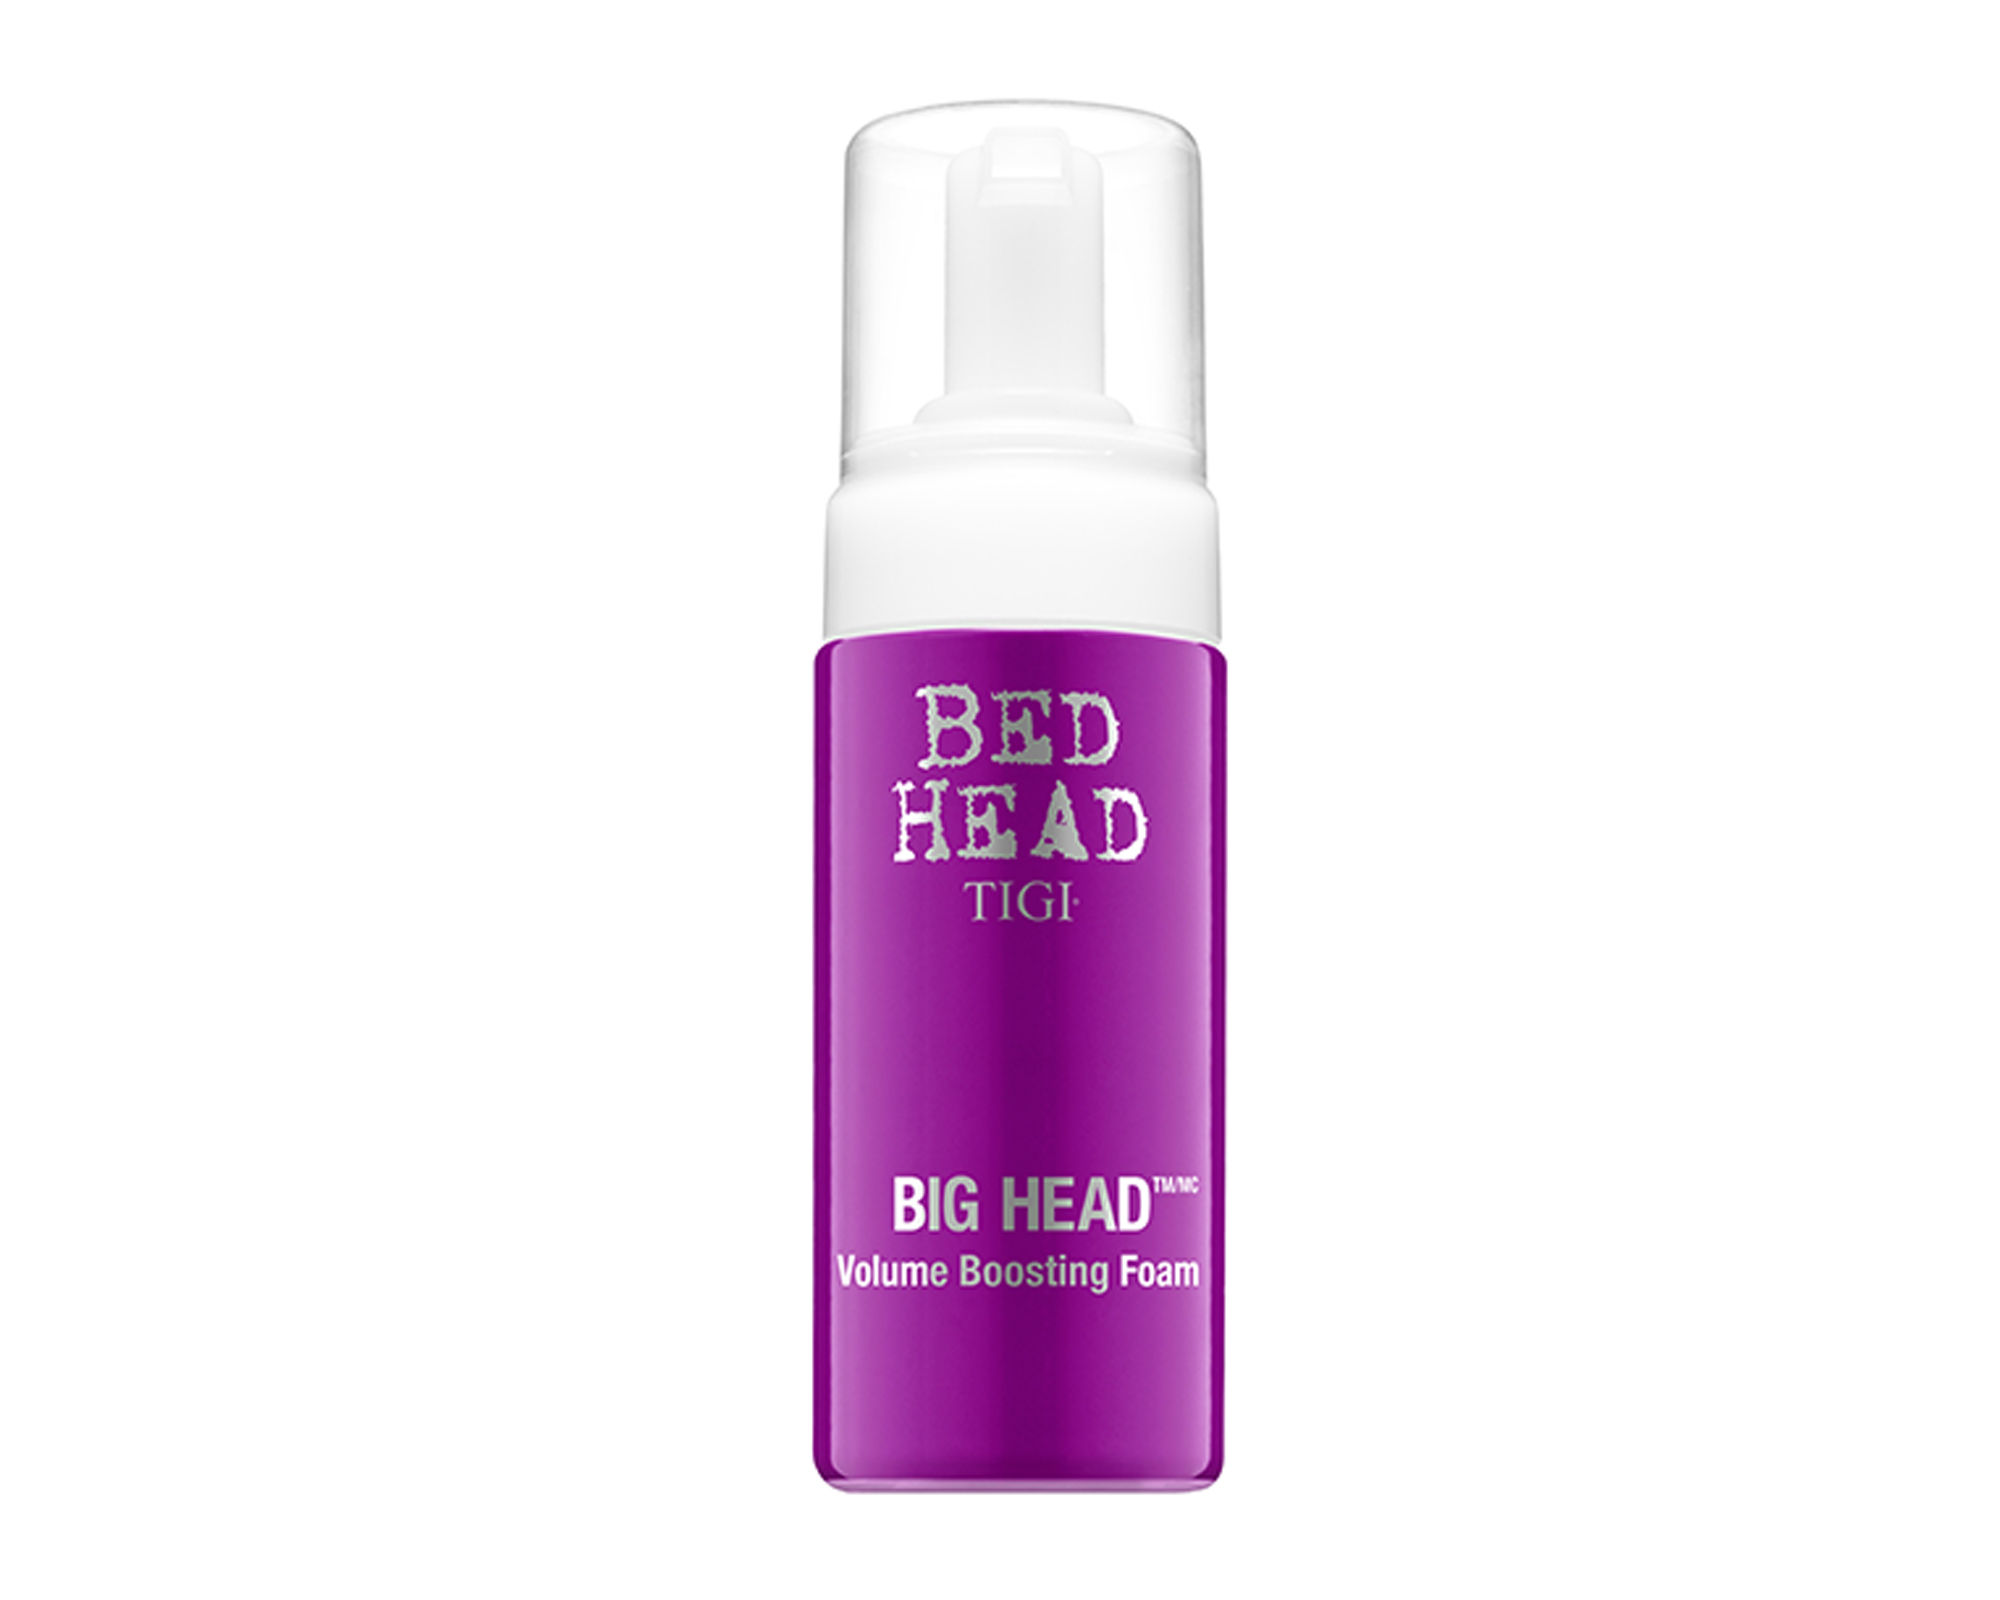 TIGI Fully Loaded Big Head Volume Boosting Foam 125ml